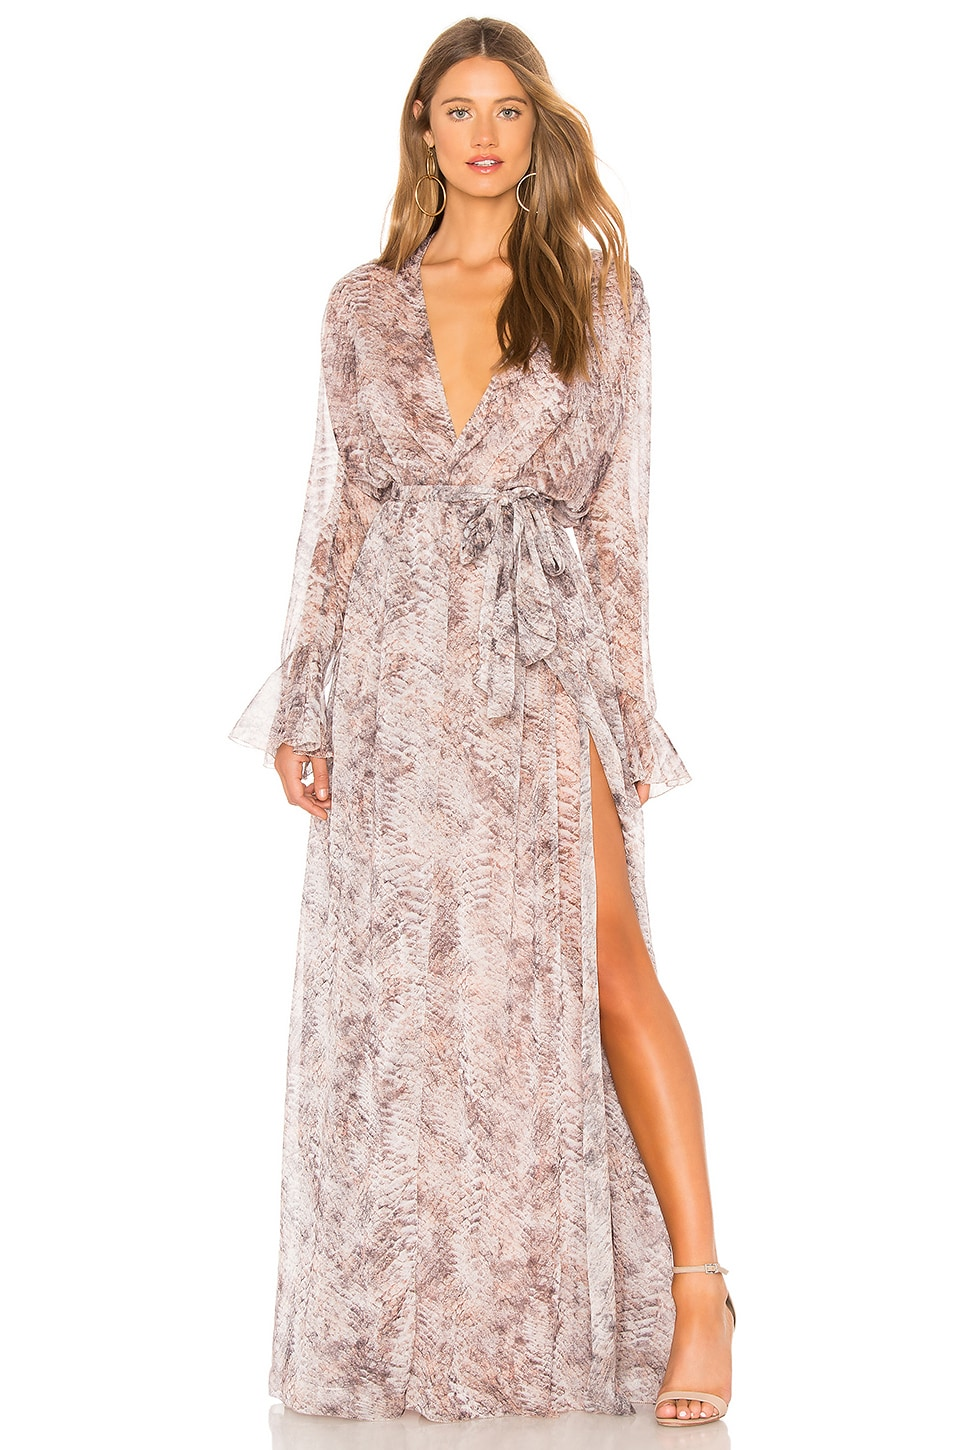 THE JETSET DIARIES Basilisk Maxi Dress in Snake Print